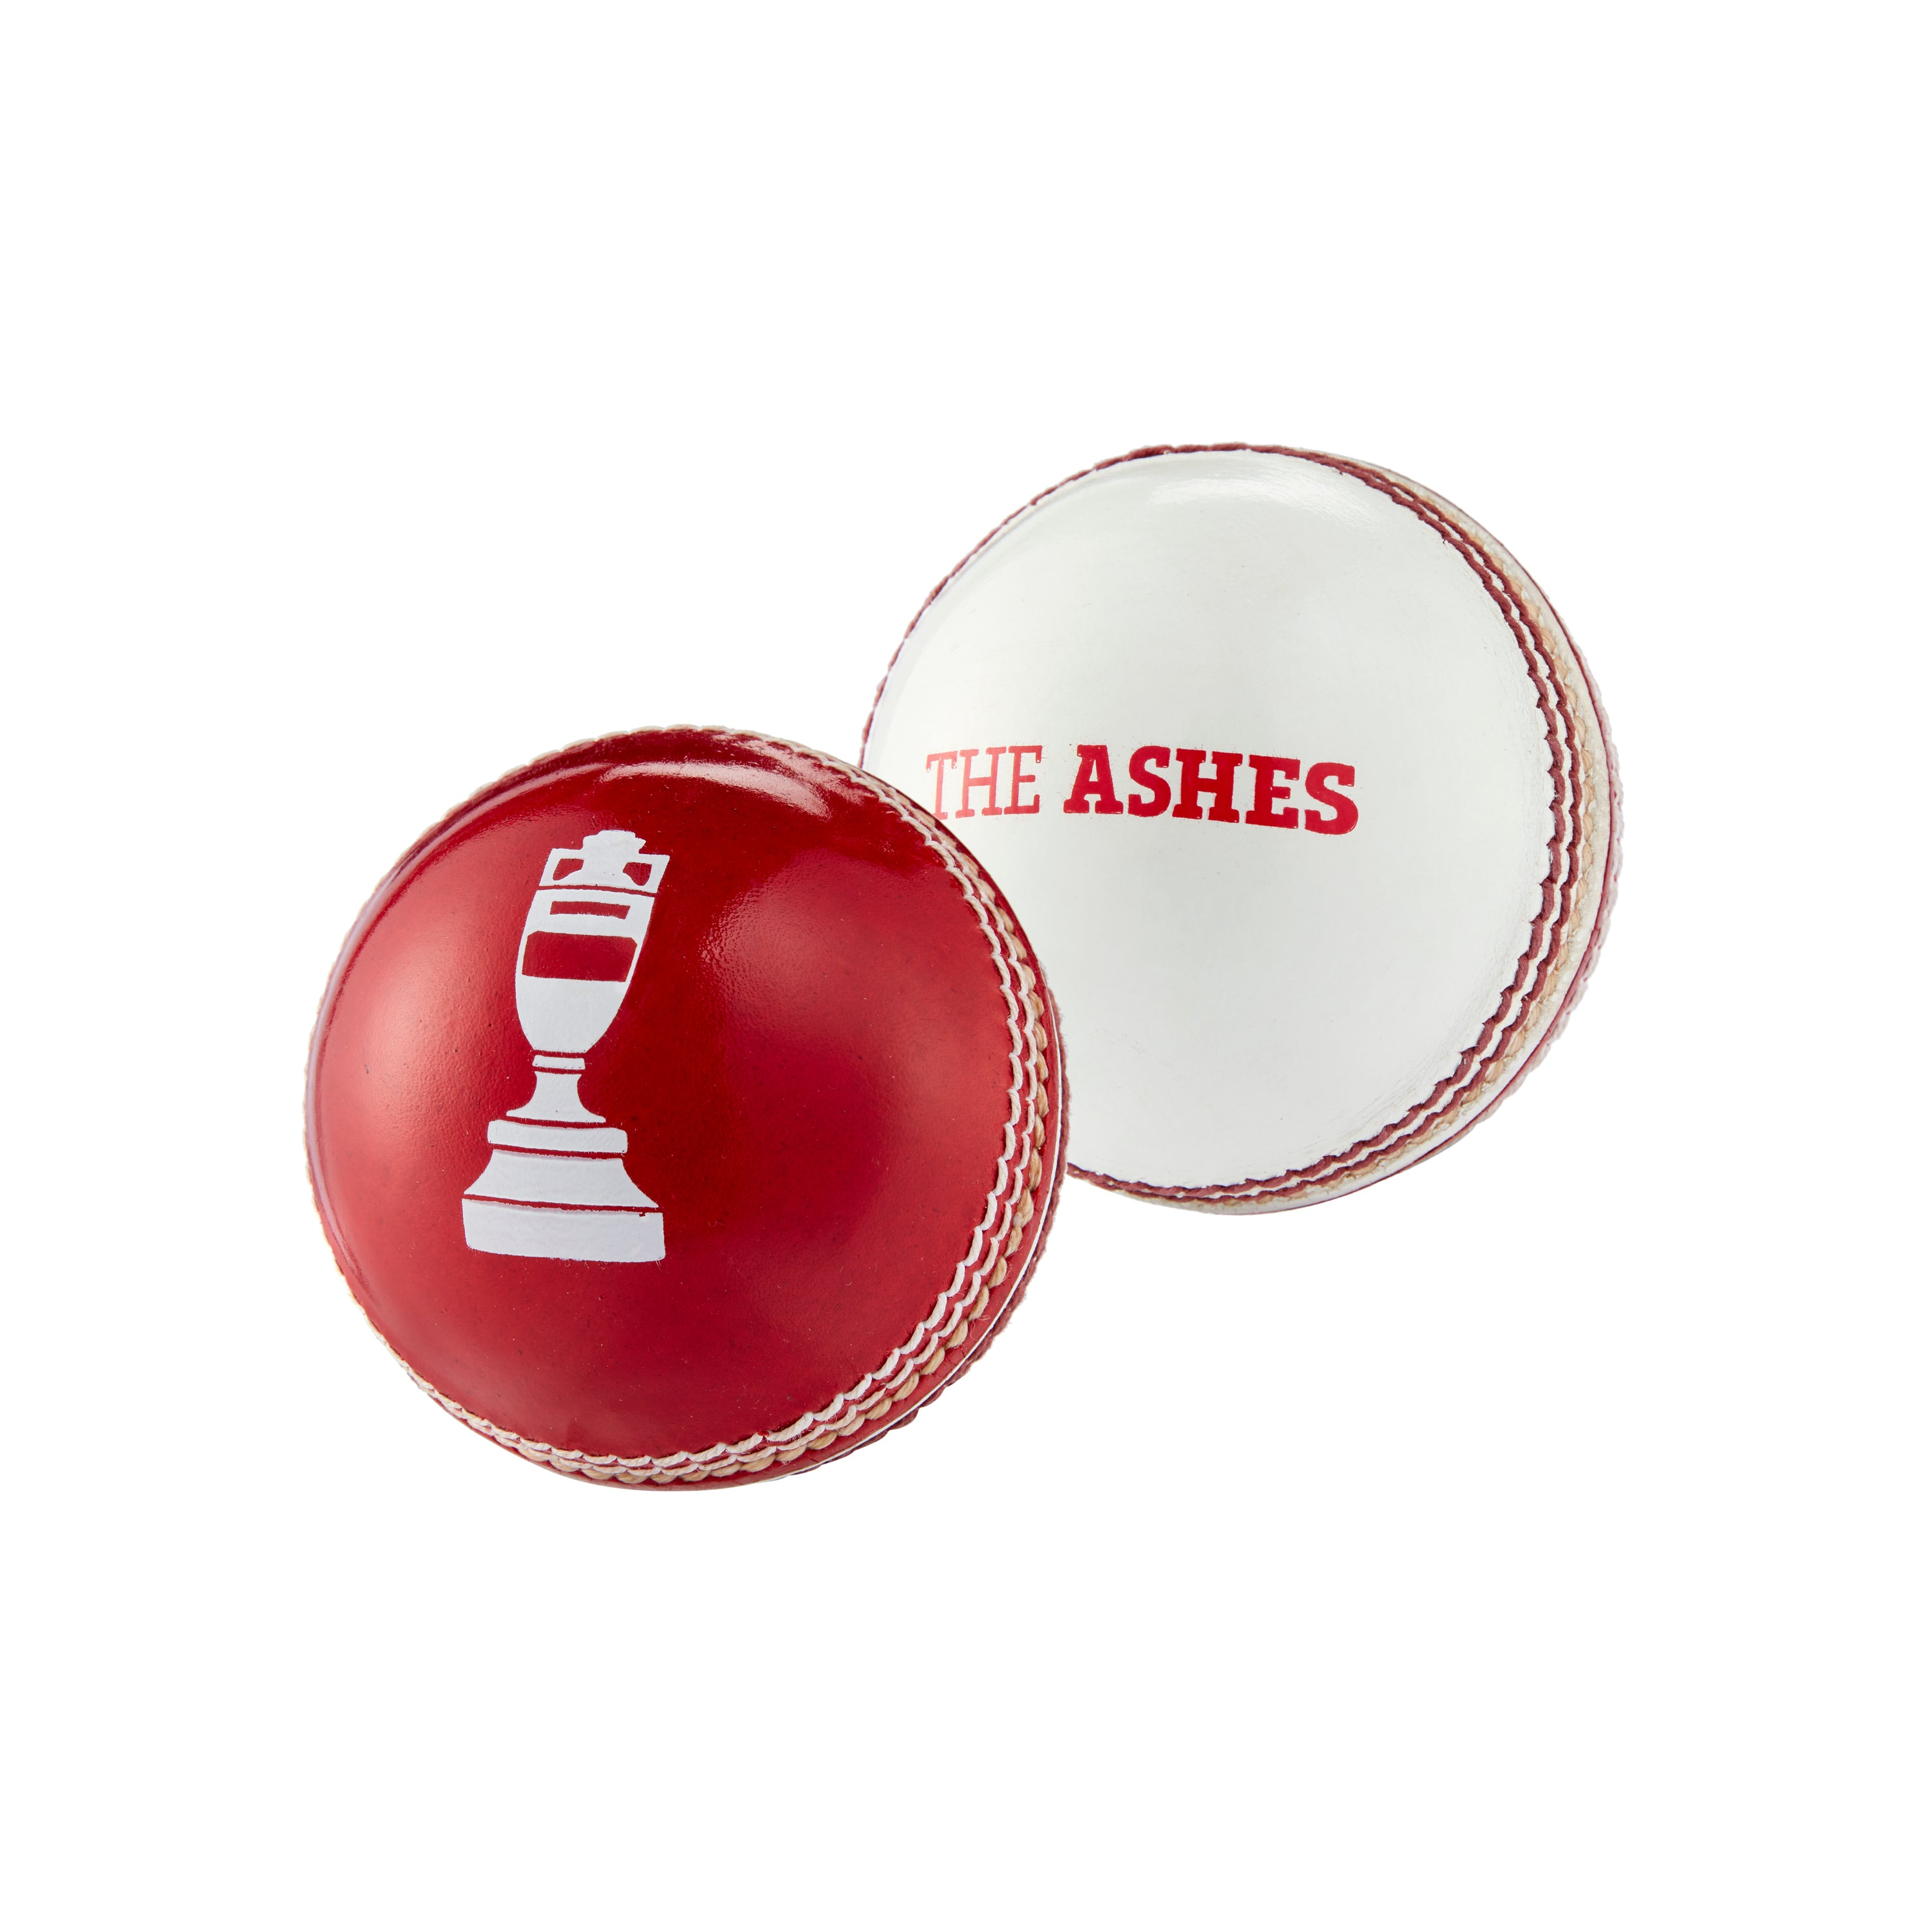 ASHES URN MINI BALL IN RED & WHITE